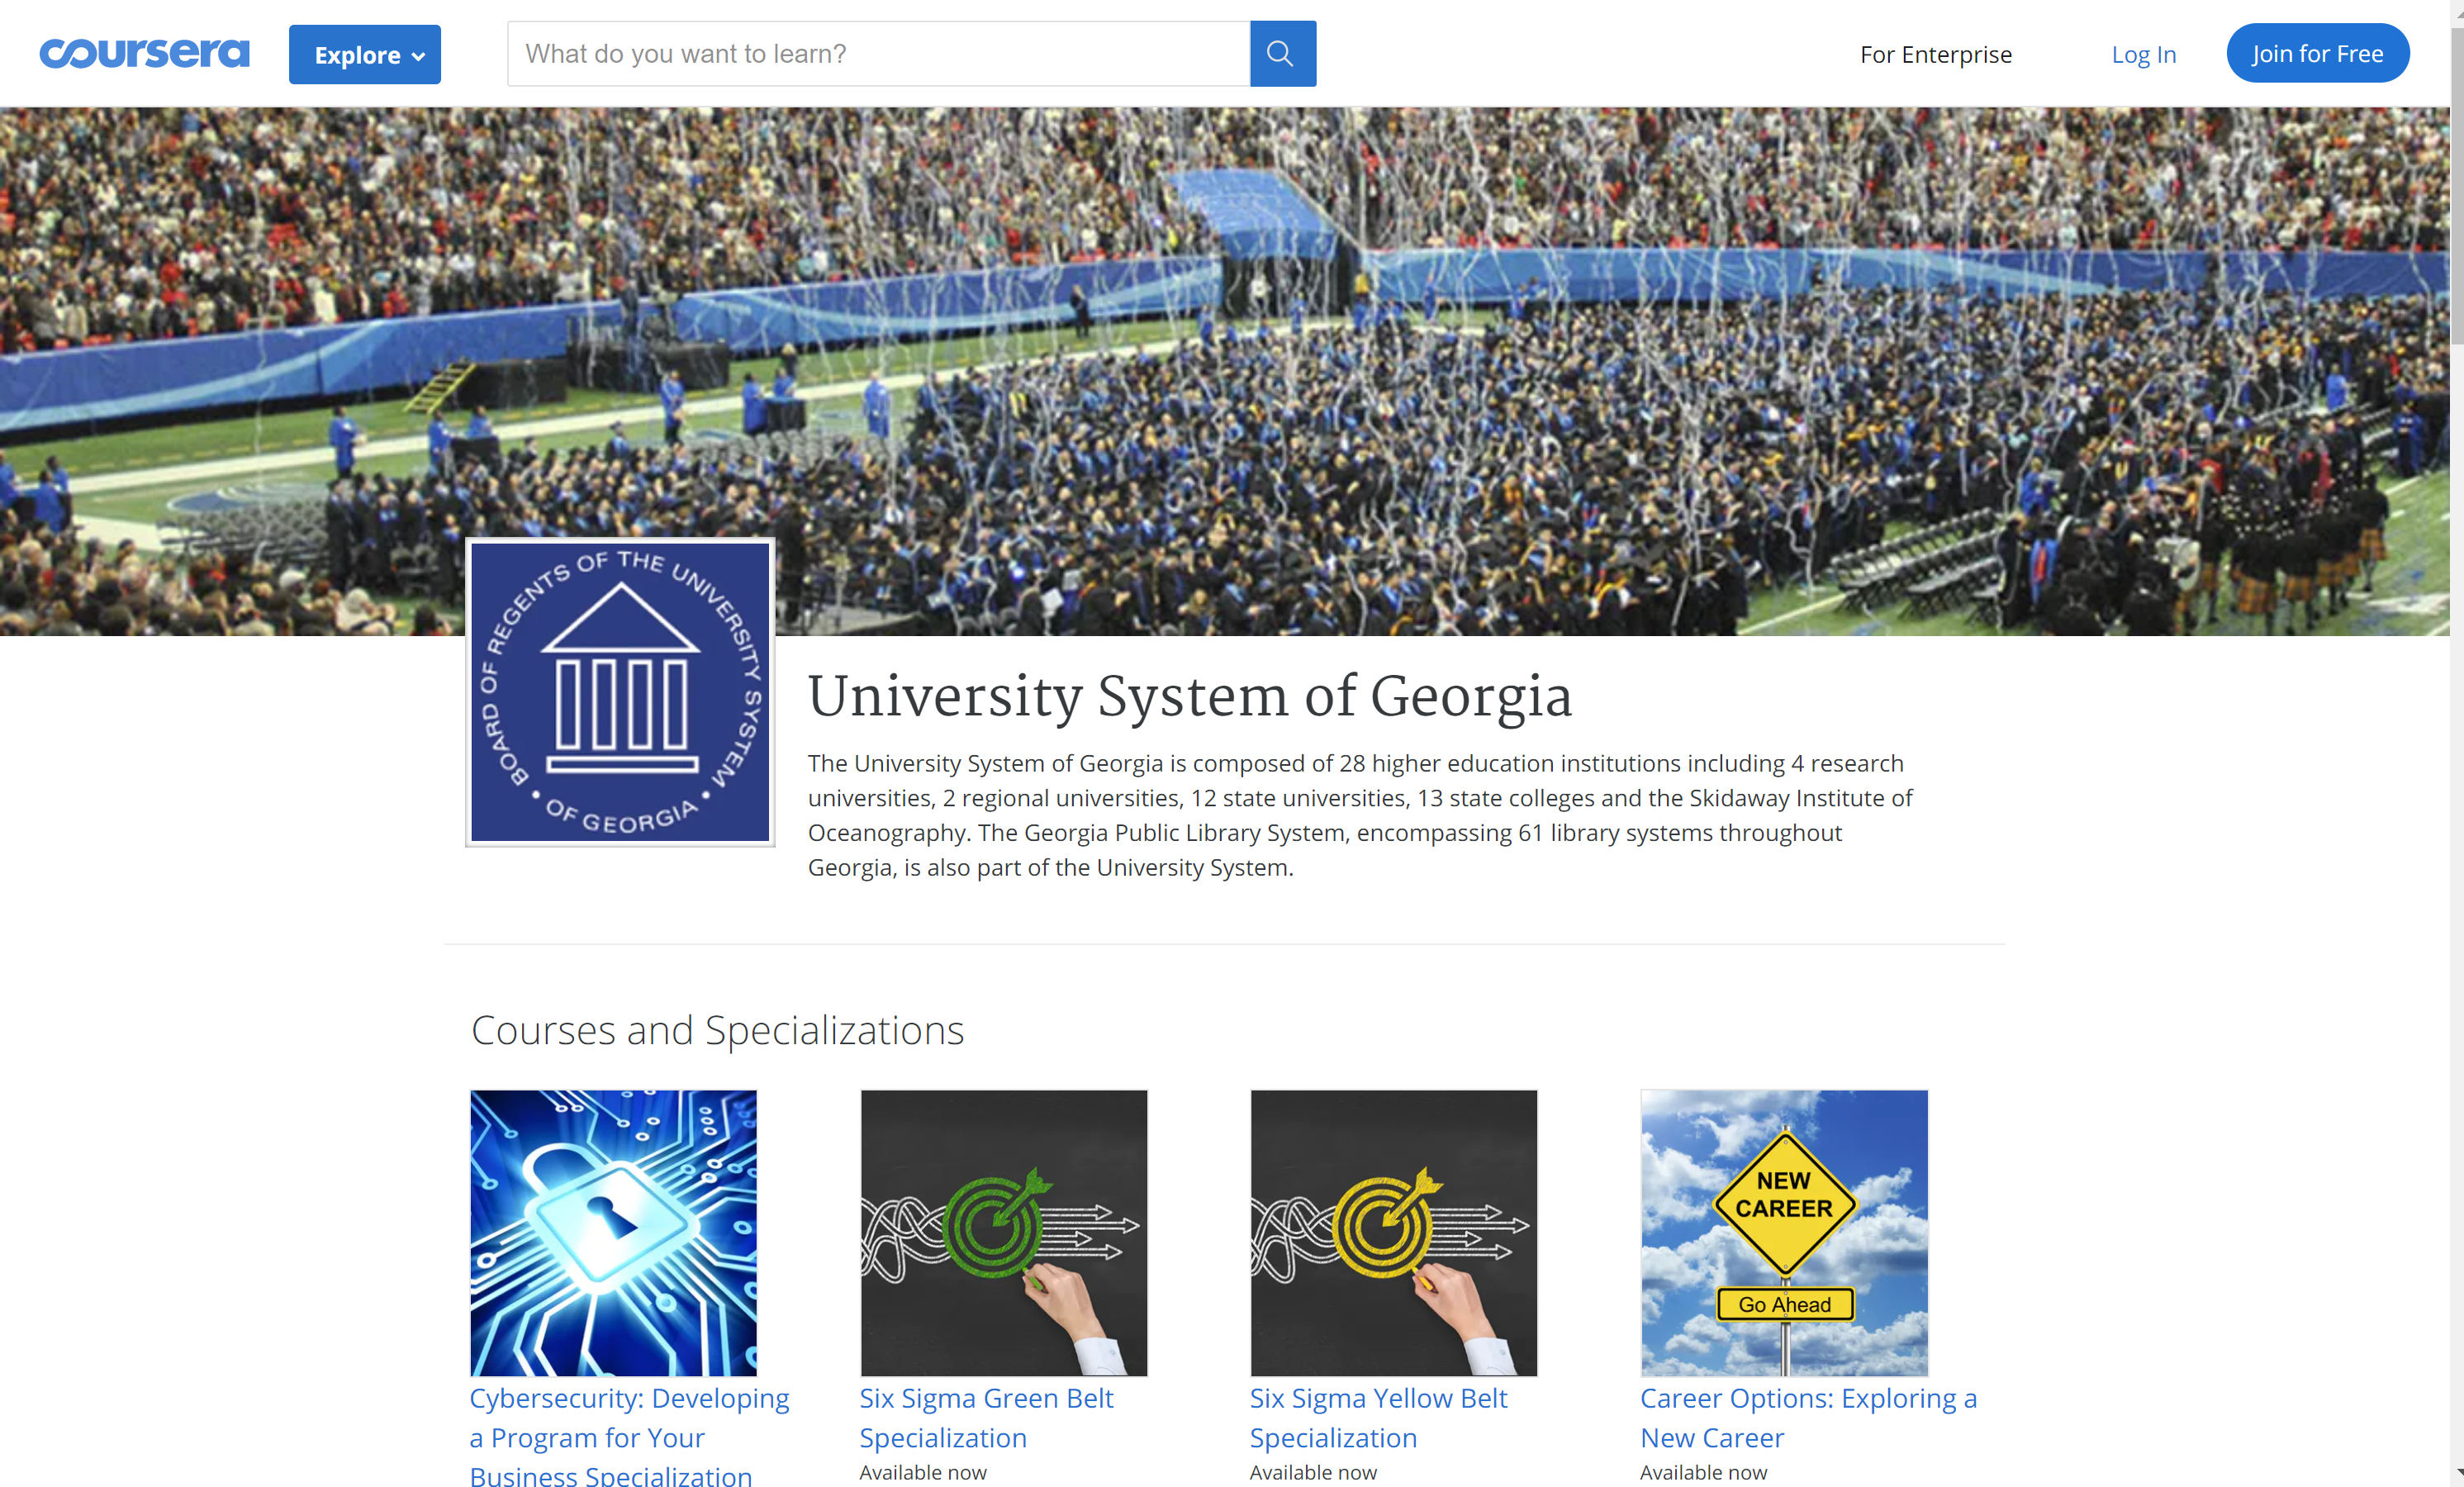 University System of Georgia Online Courses Coursera